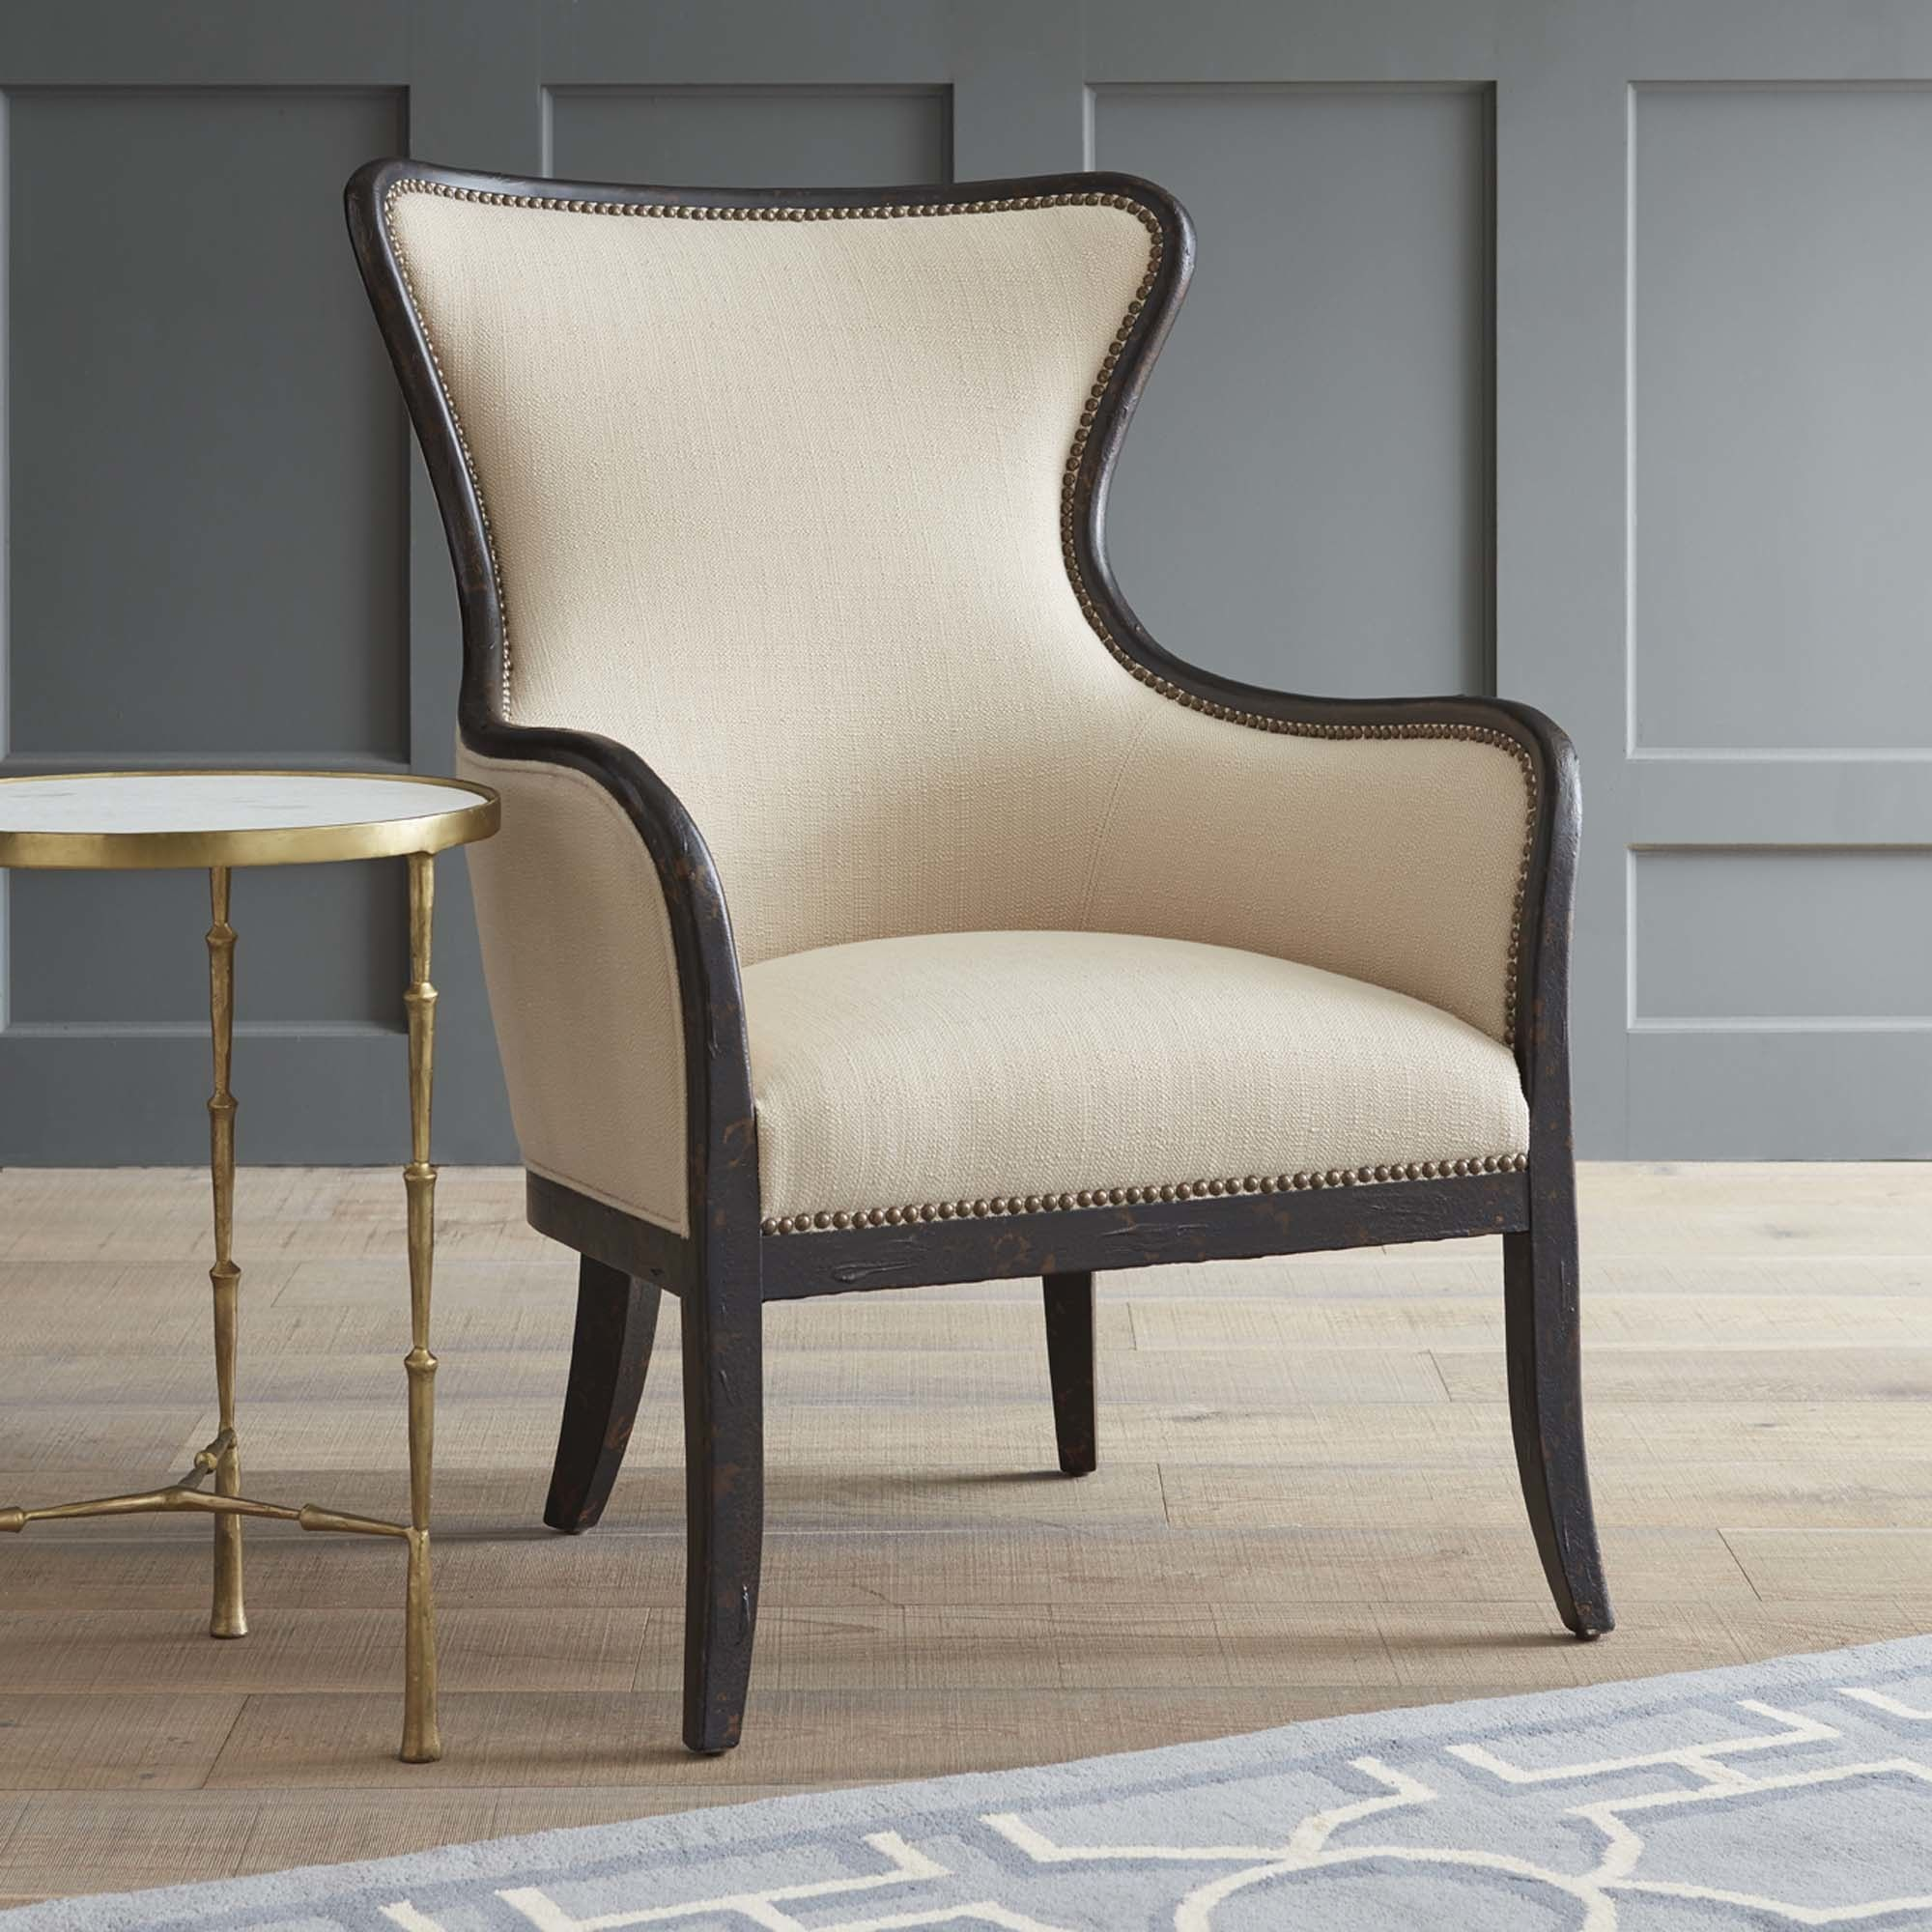 Wilmore Winged Chair Furniture, Home, Armchair